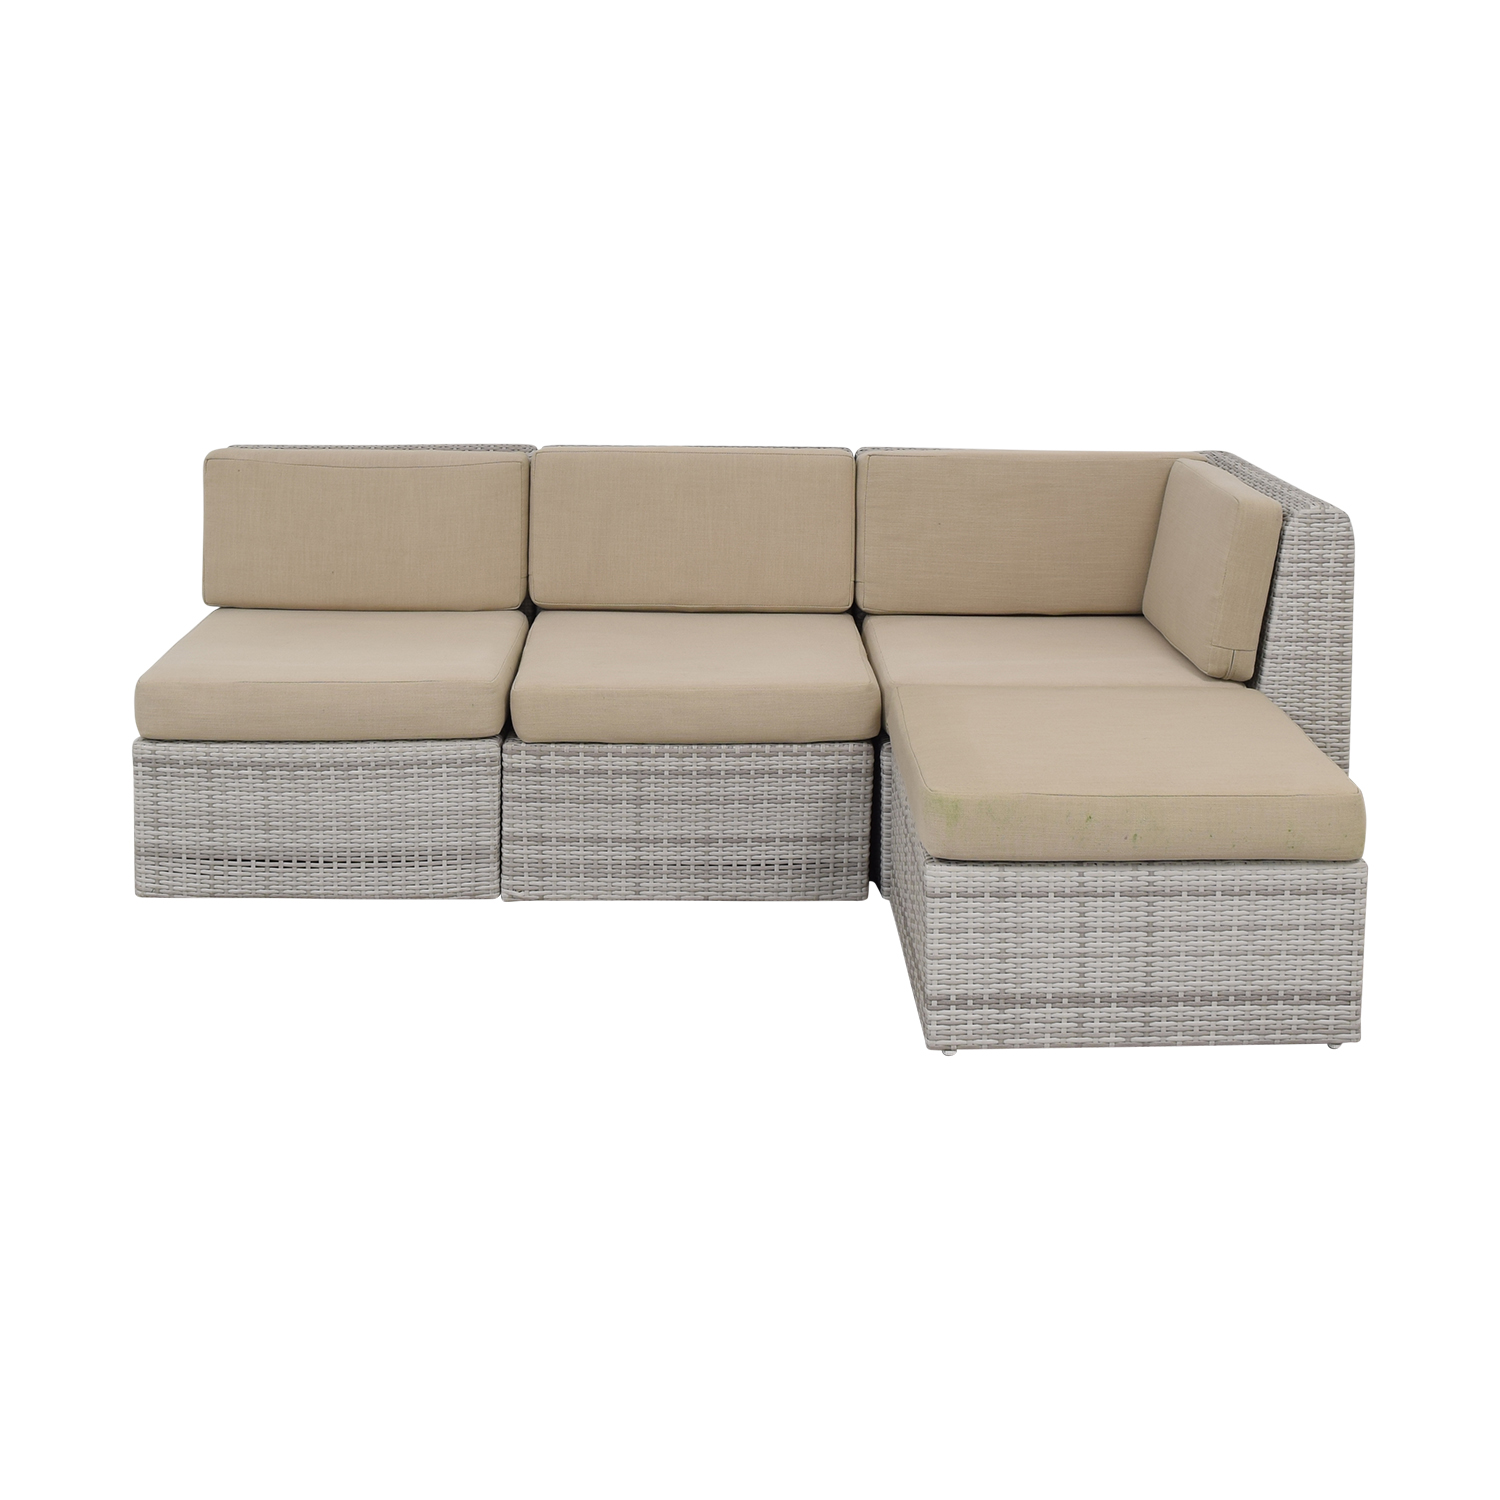 55% OFF - CB2 CB2 Ebb Outdoor Sectional Sofa / Sofas